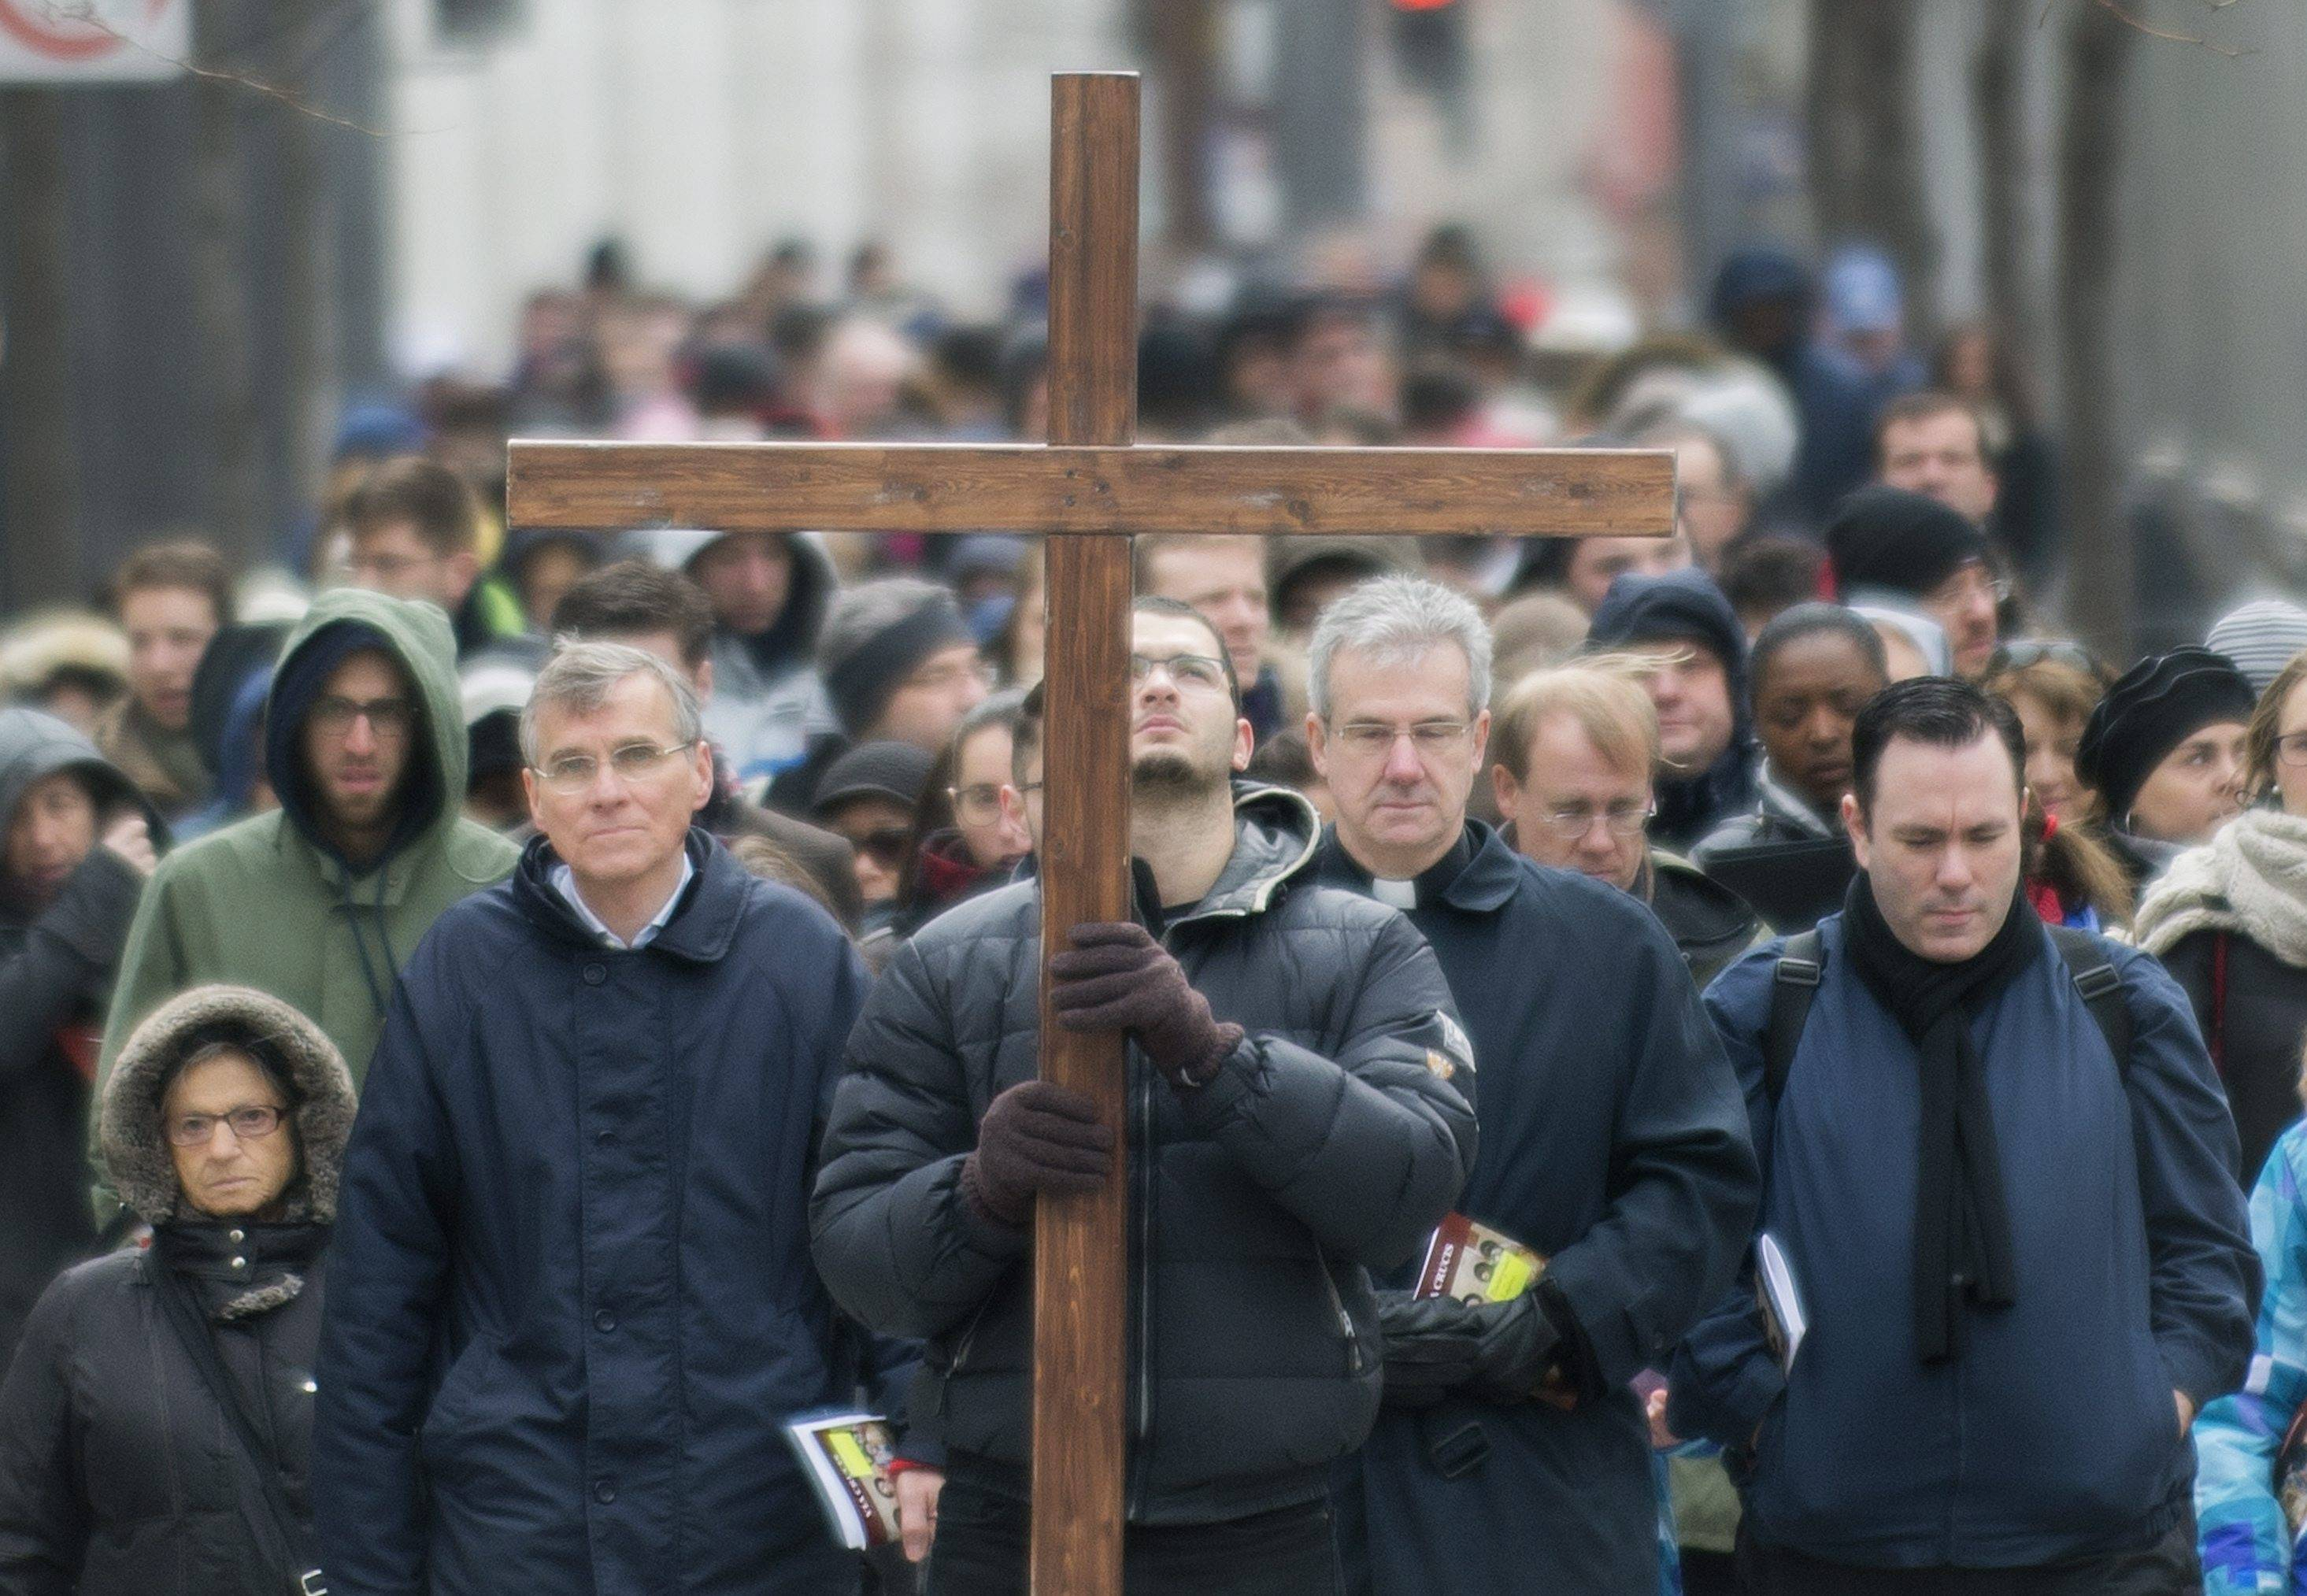 A man walks with a crucifix along with the faithful as they participate in the Way of the Cross on Good Friday in Montreal.